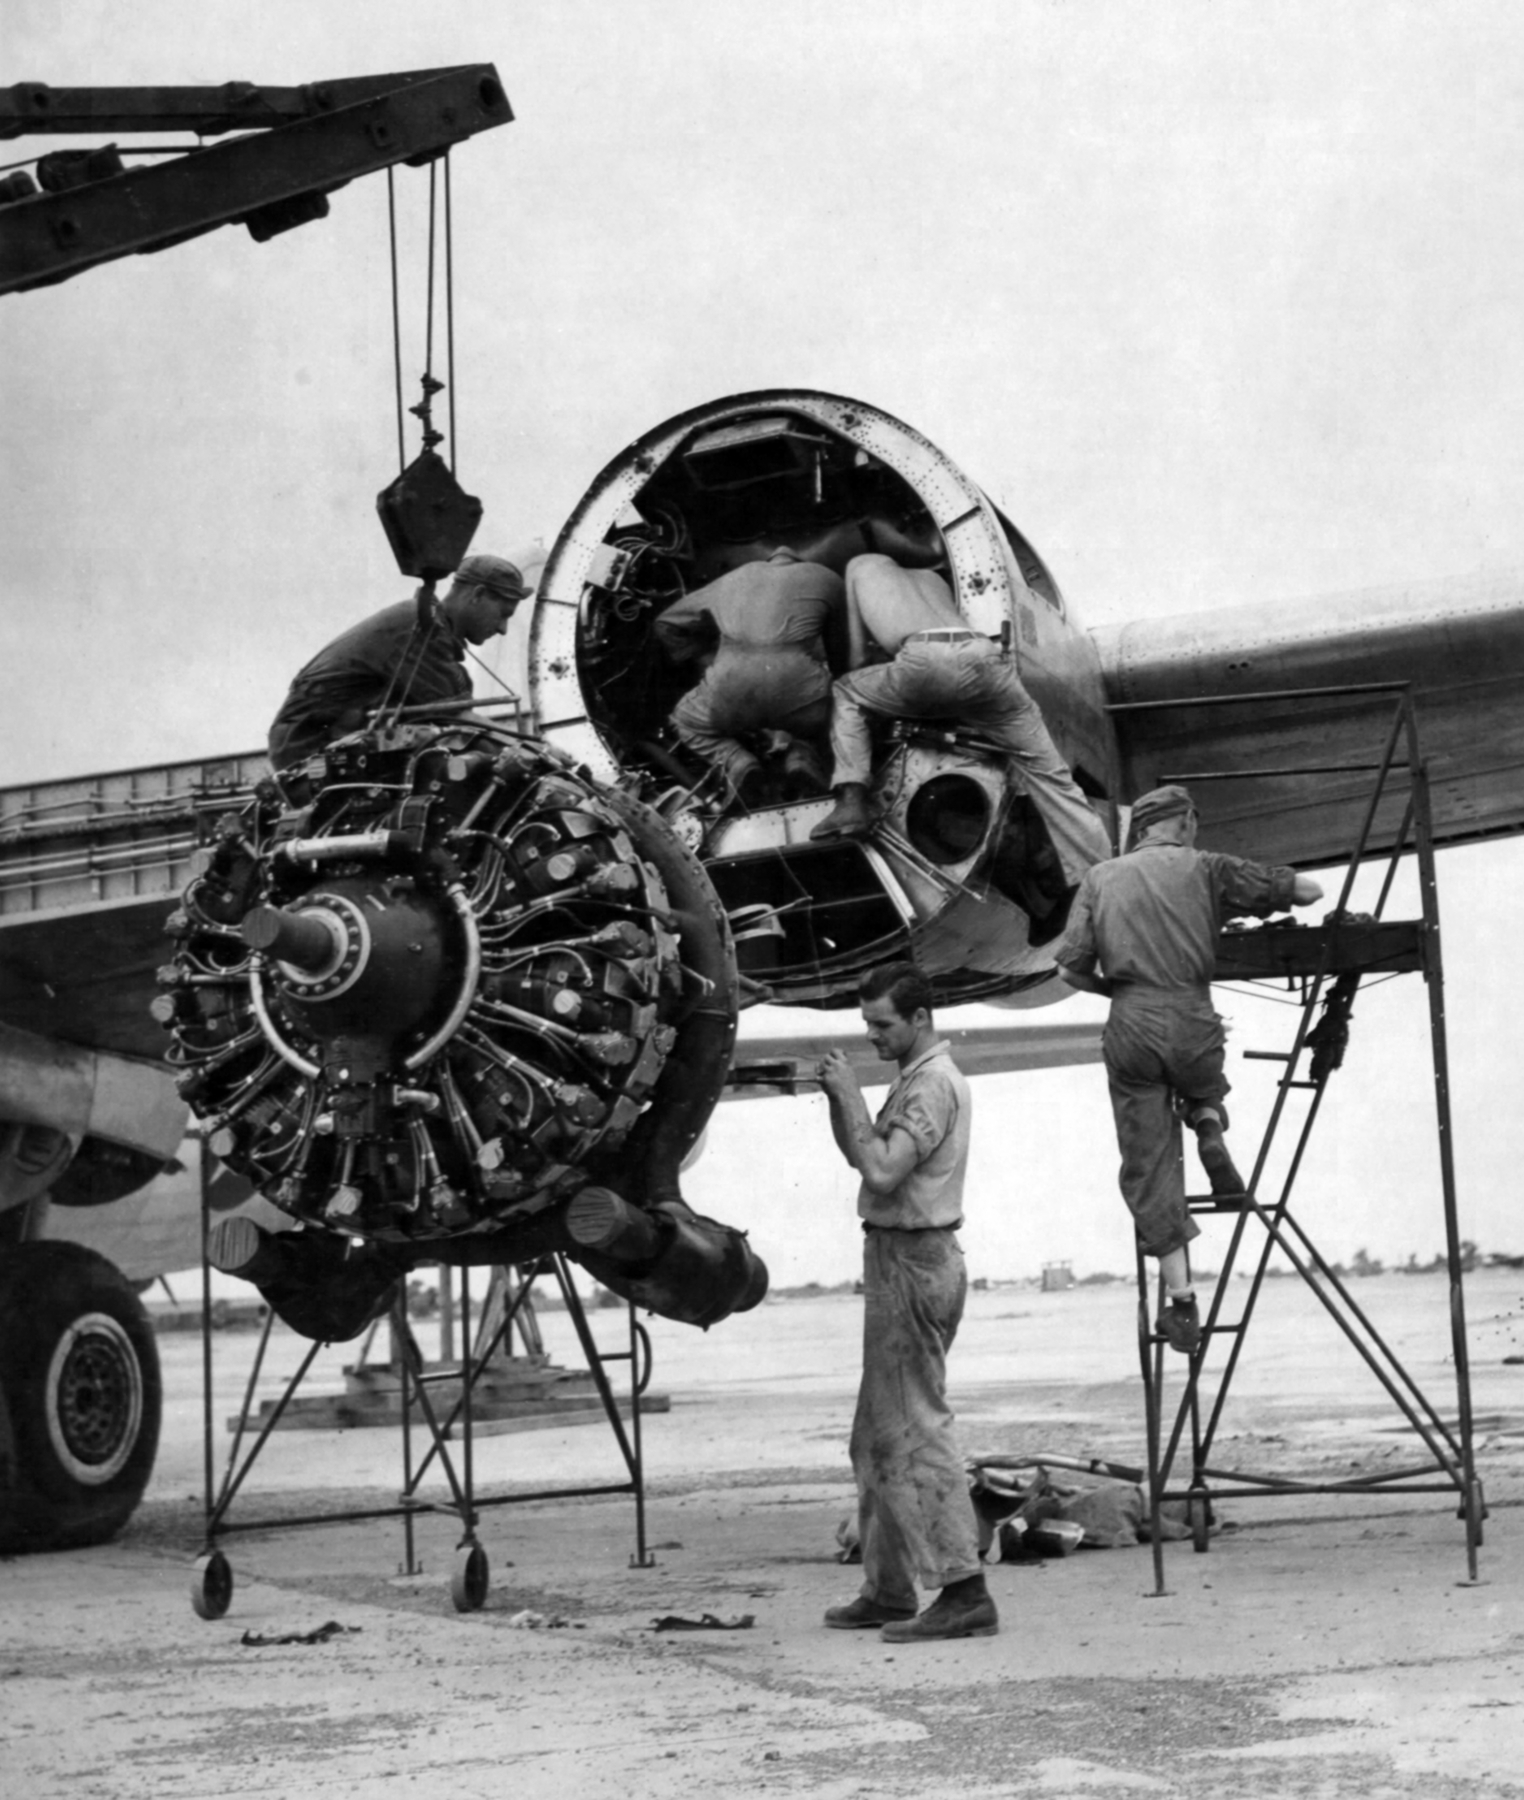 Sustitución de un motor R-3350 en un Superfortress estacionado en la India. La juventud del diseño de este propulsor provocaron gravísimos accidentes solo subsanados mediante modificaciones en la refrigeración (fuente: U.S. Air Force)